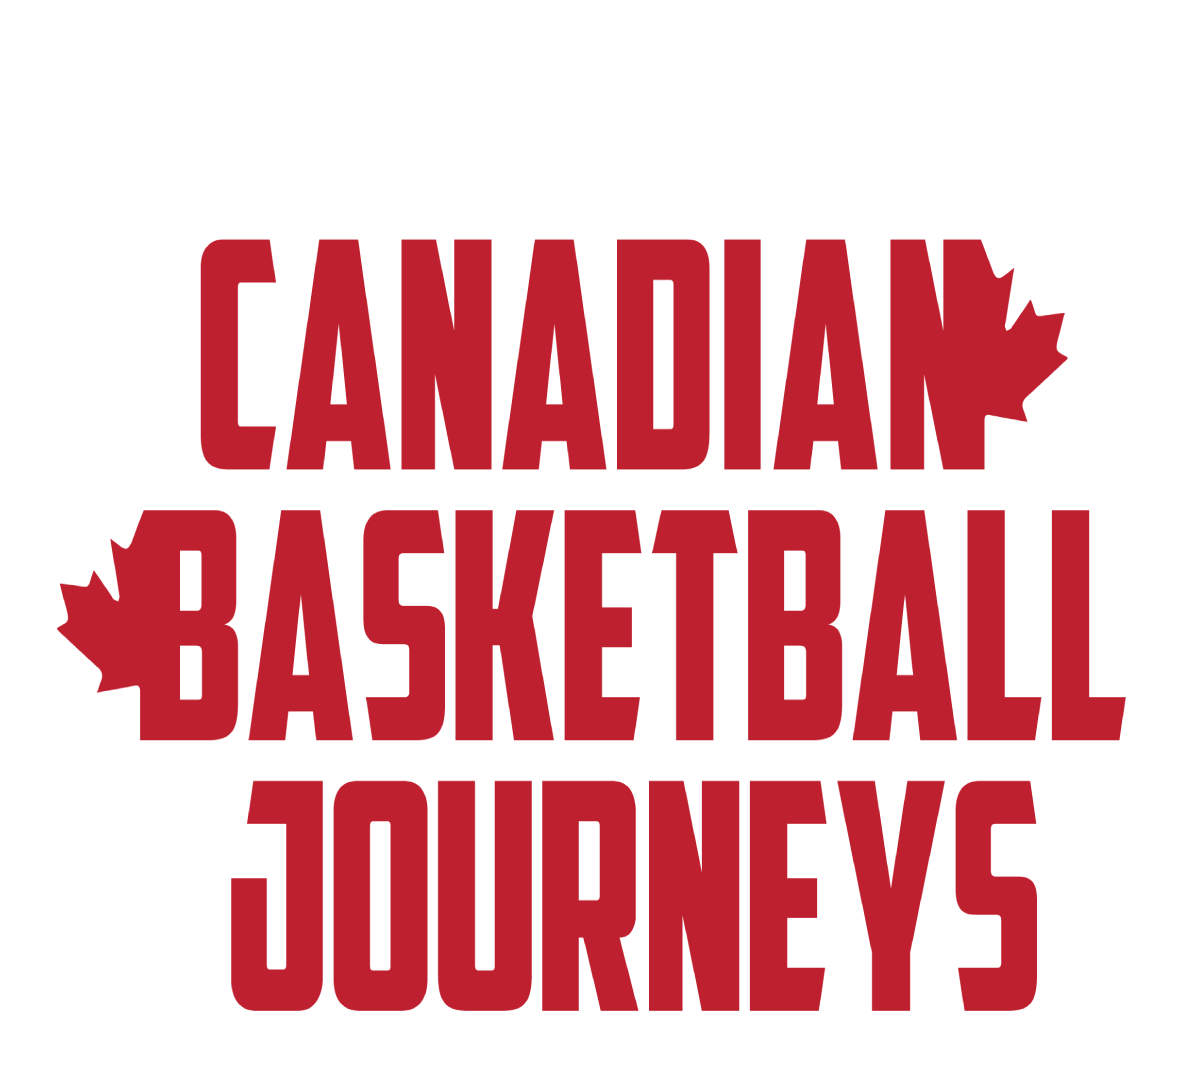 Canadian Basketball Journeys